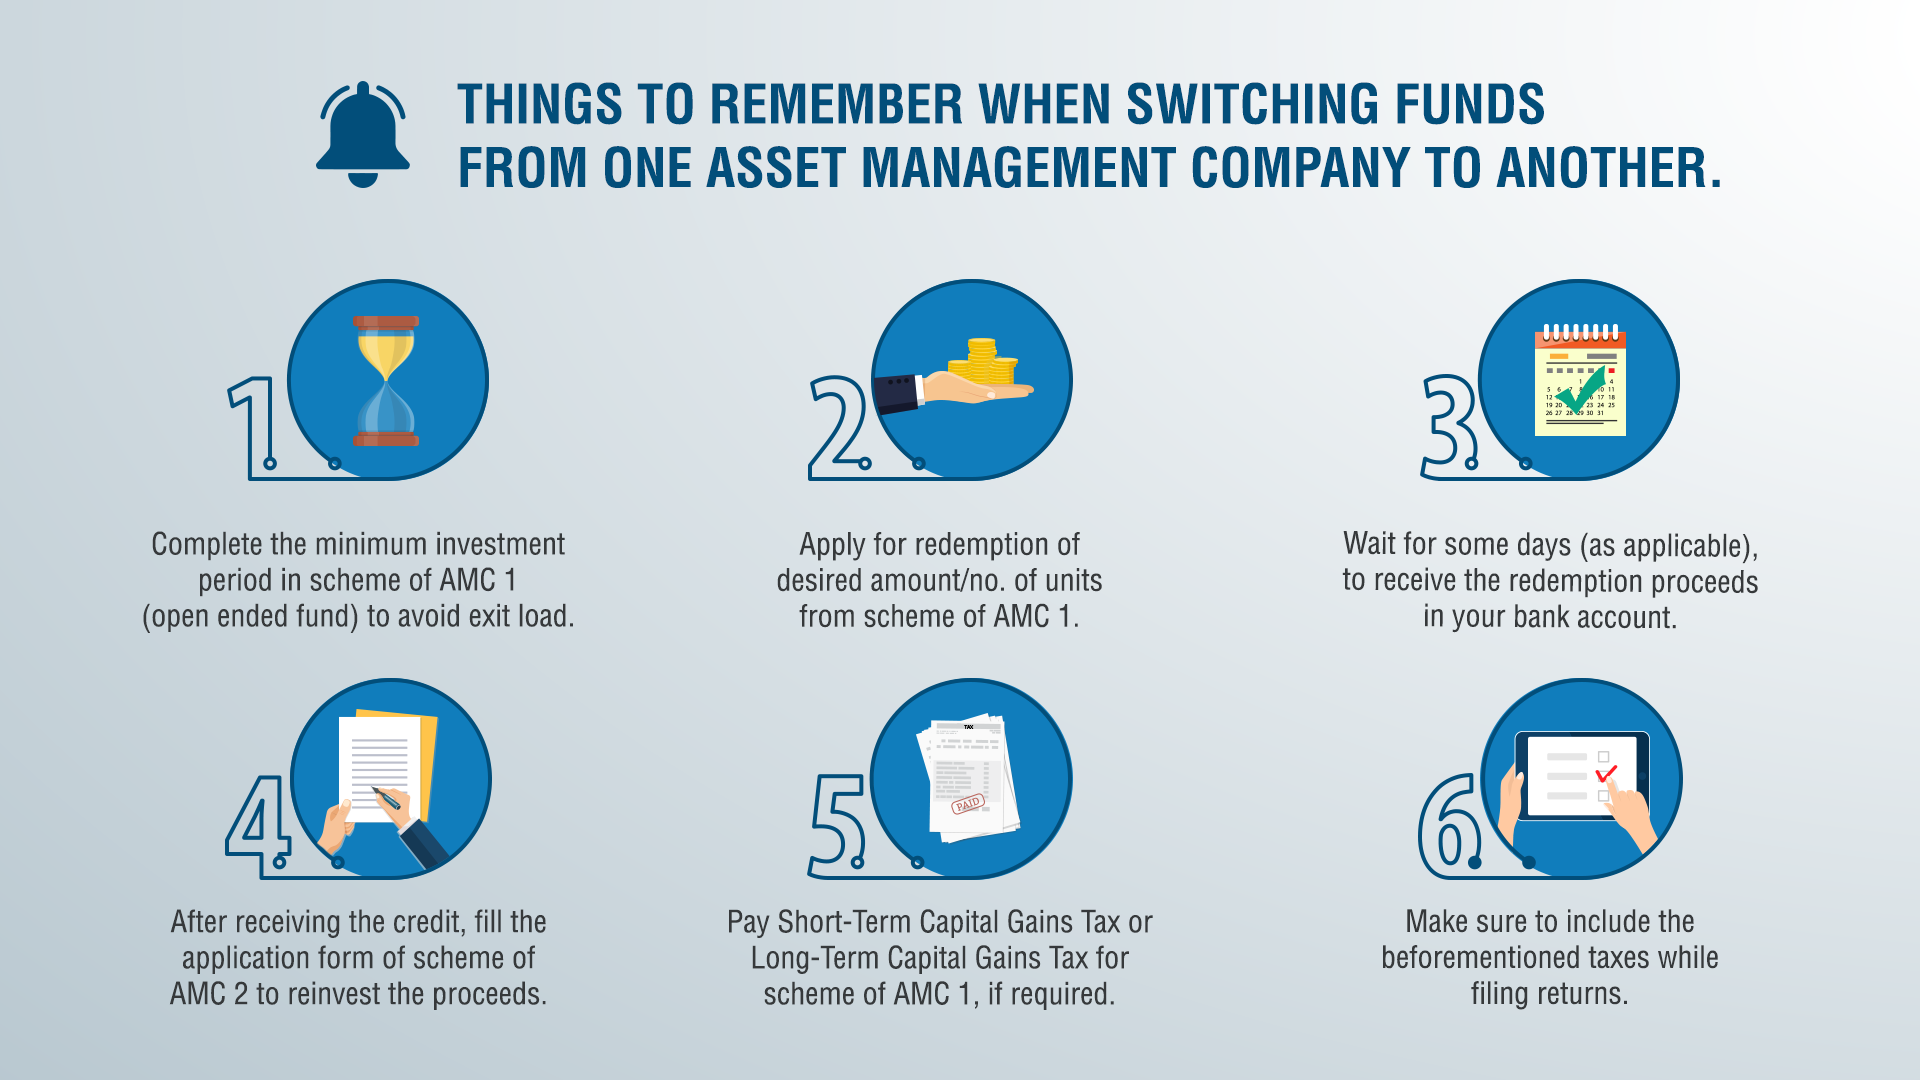 How do I switch from one fund to a fund of another company?